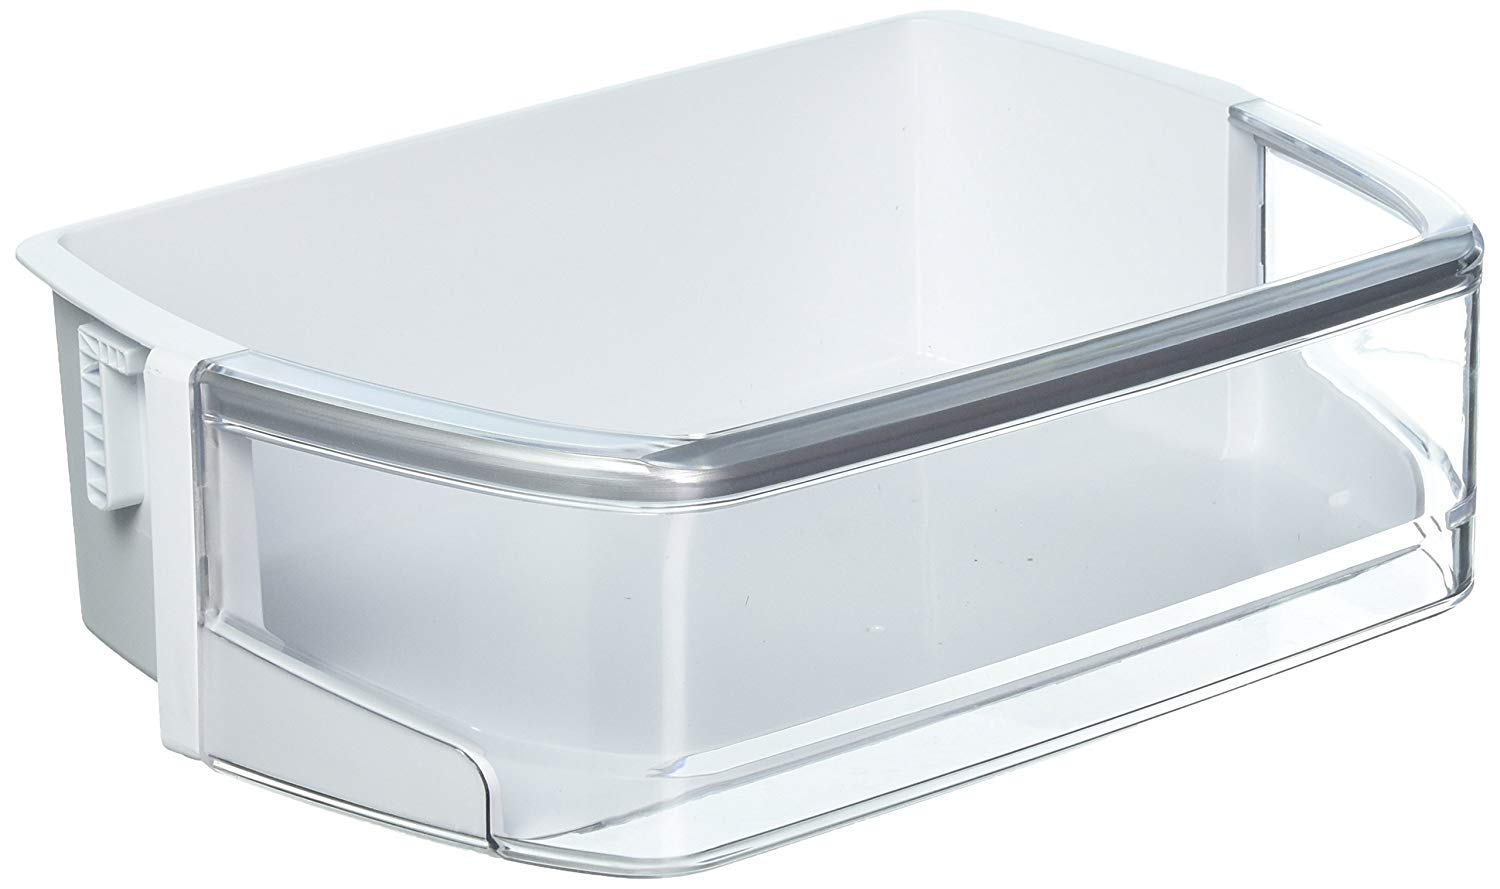 Lifetime Appliance AAP73252202 Door Shelf Bin (Right) for LG, Knemore Refrigerator